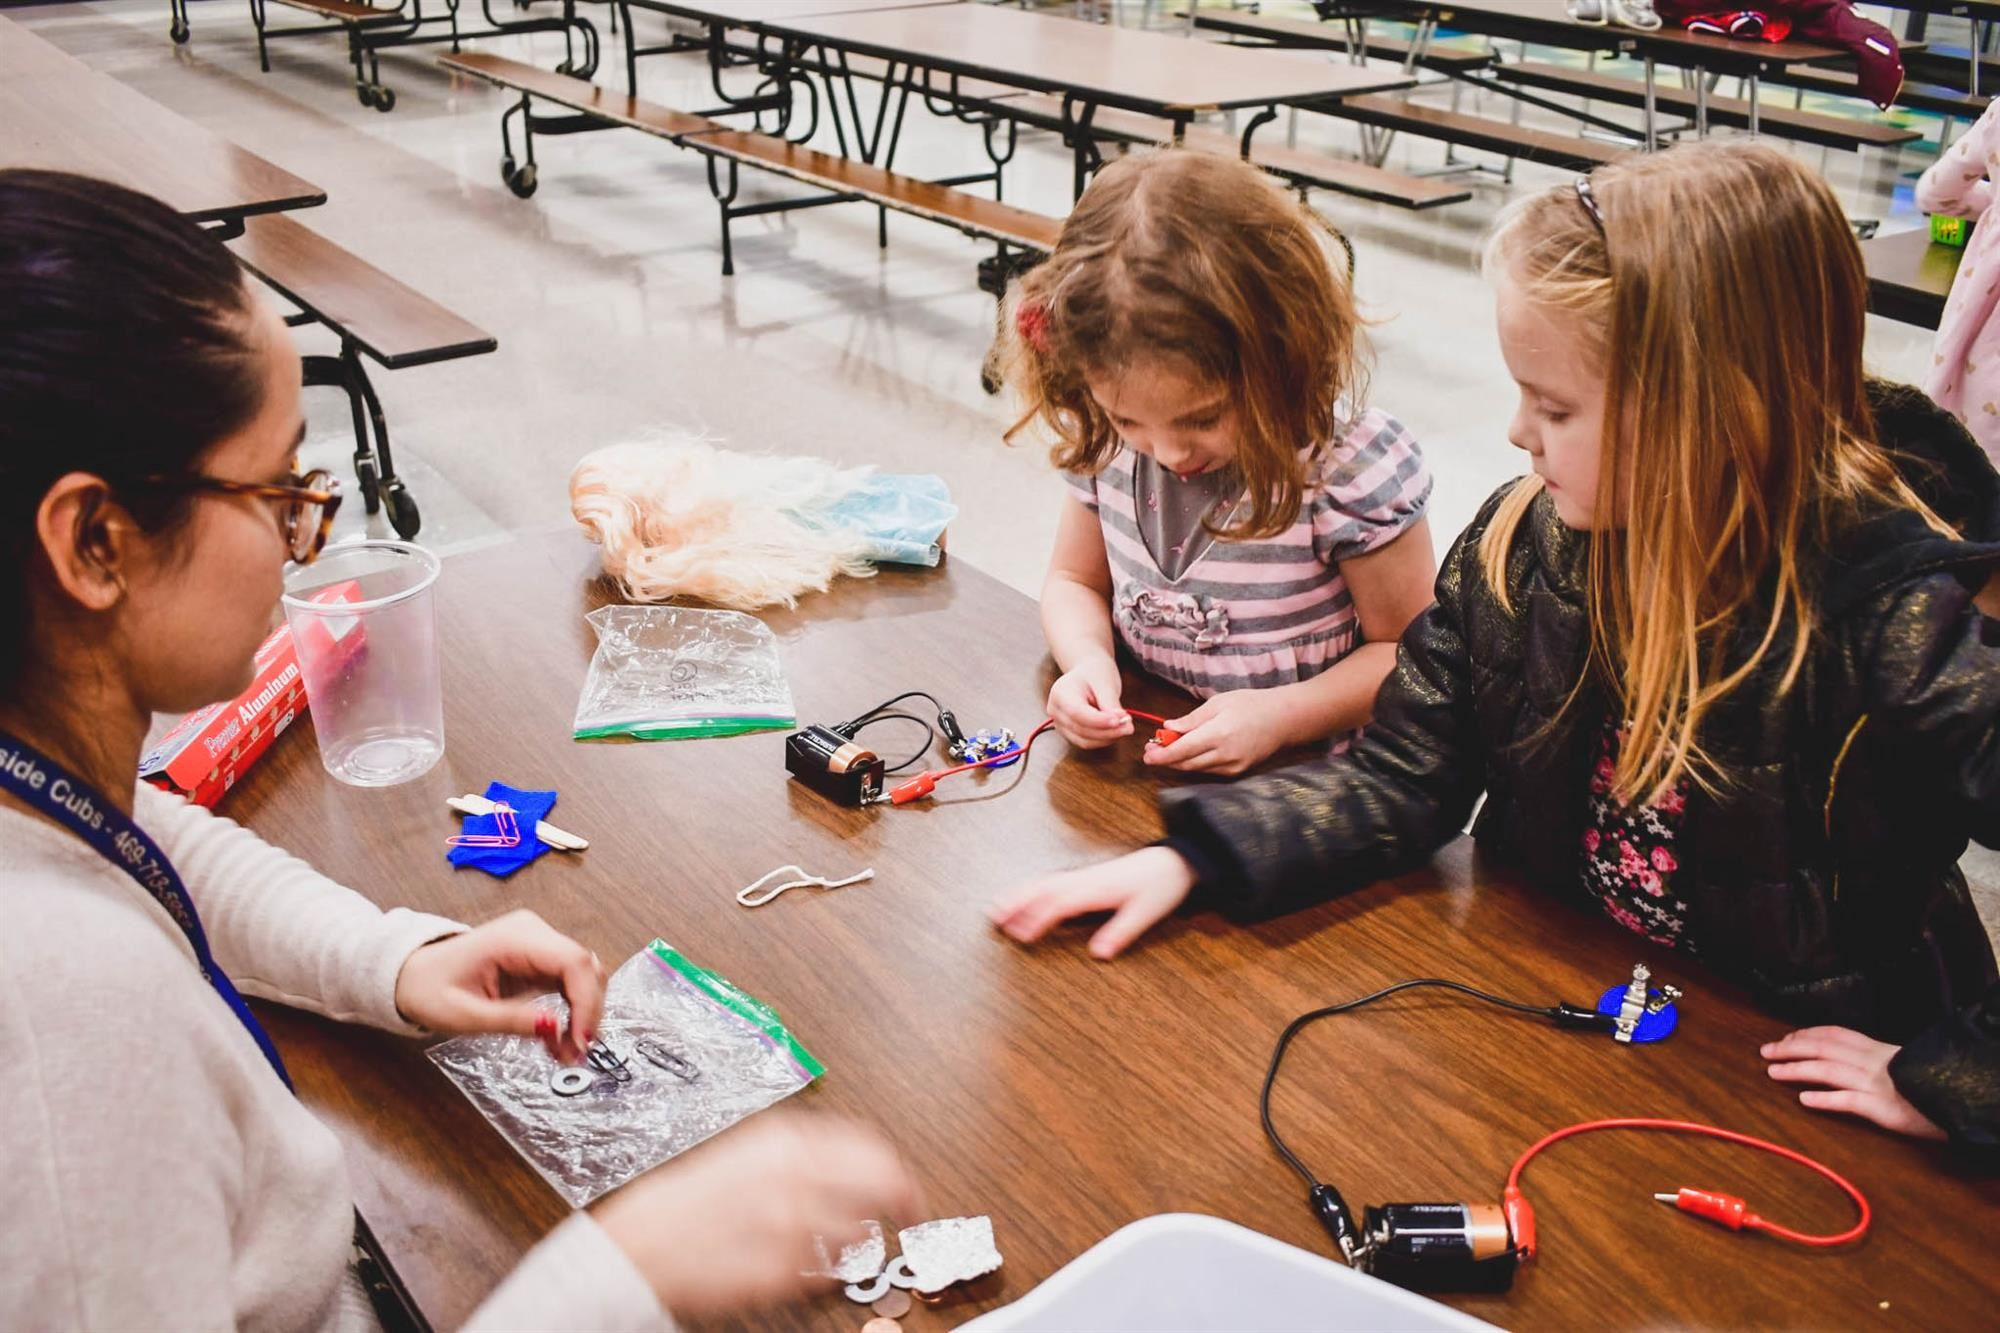 Students work with circuits